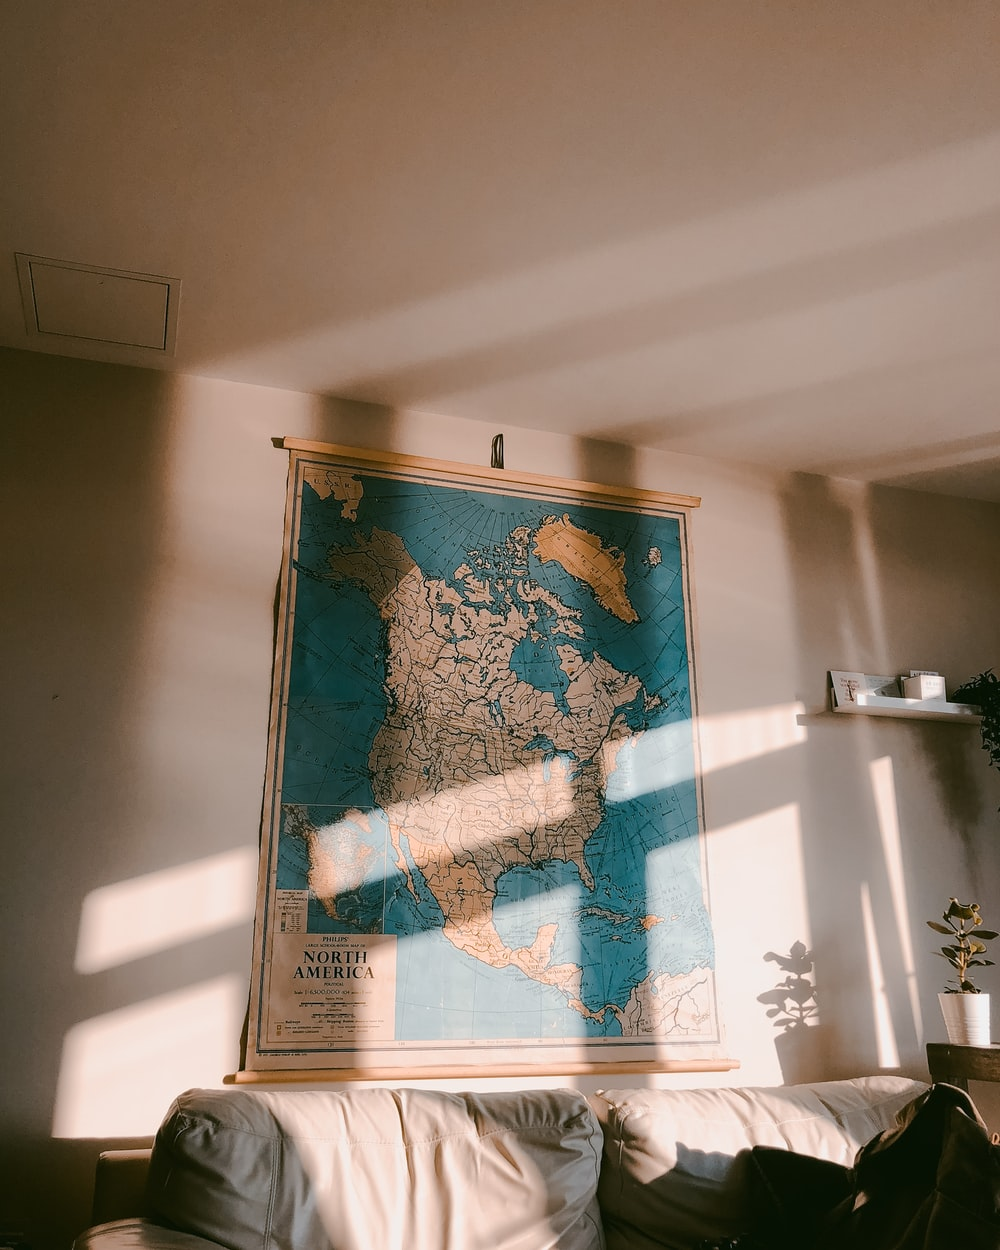 North America map on white wall